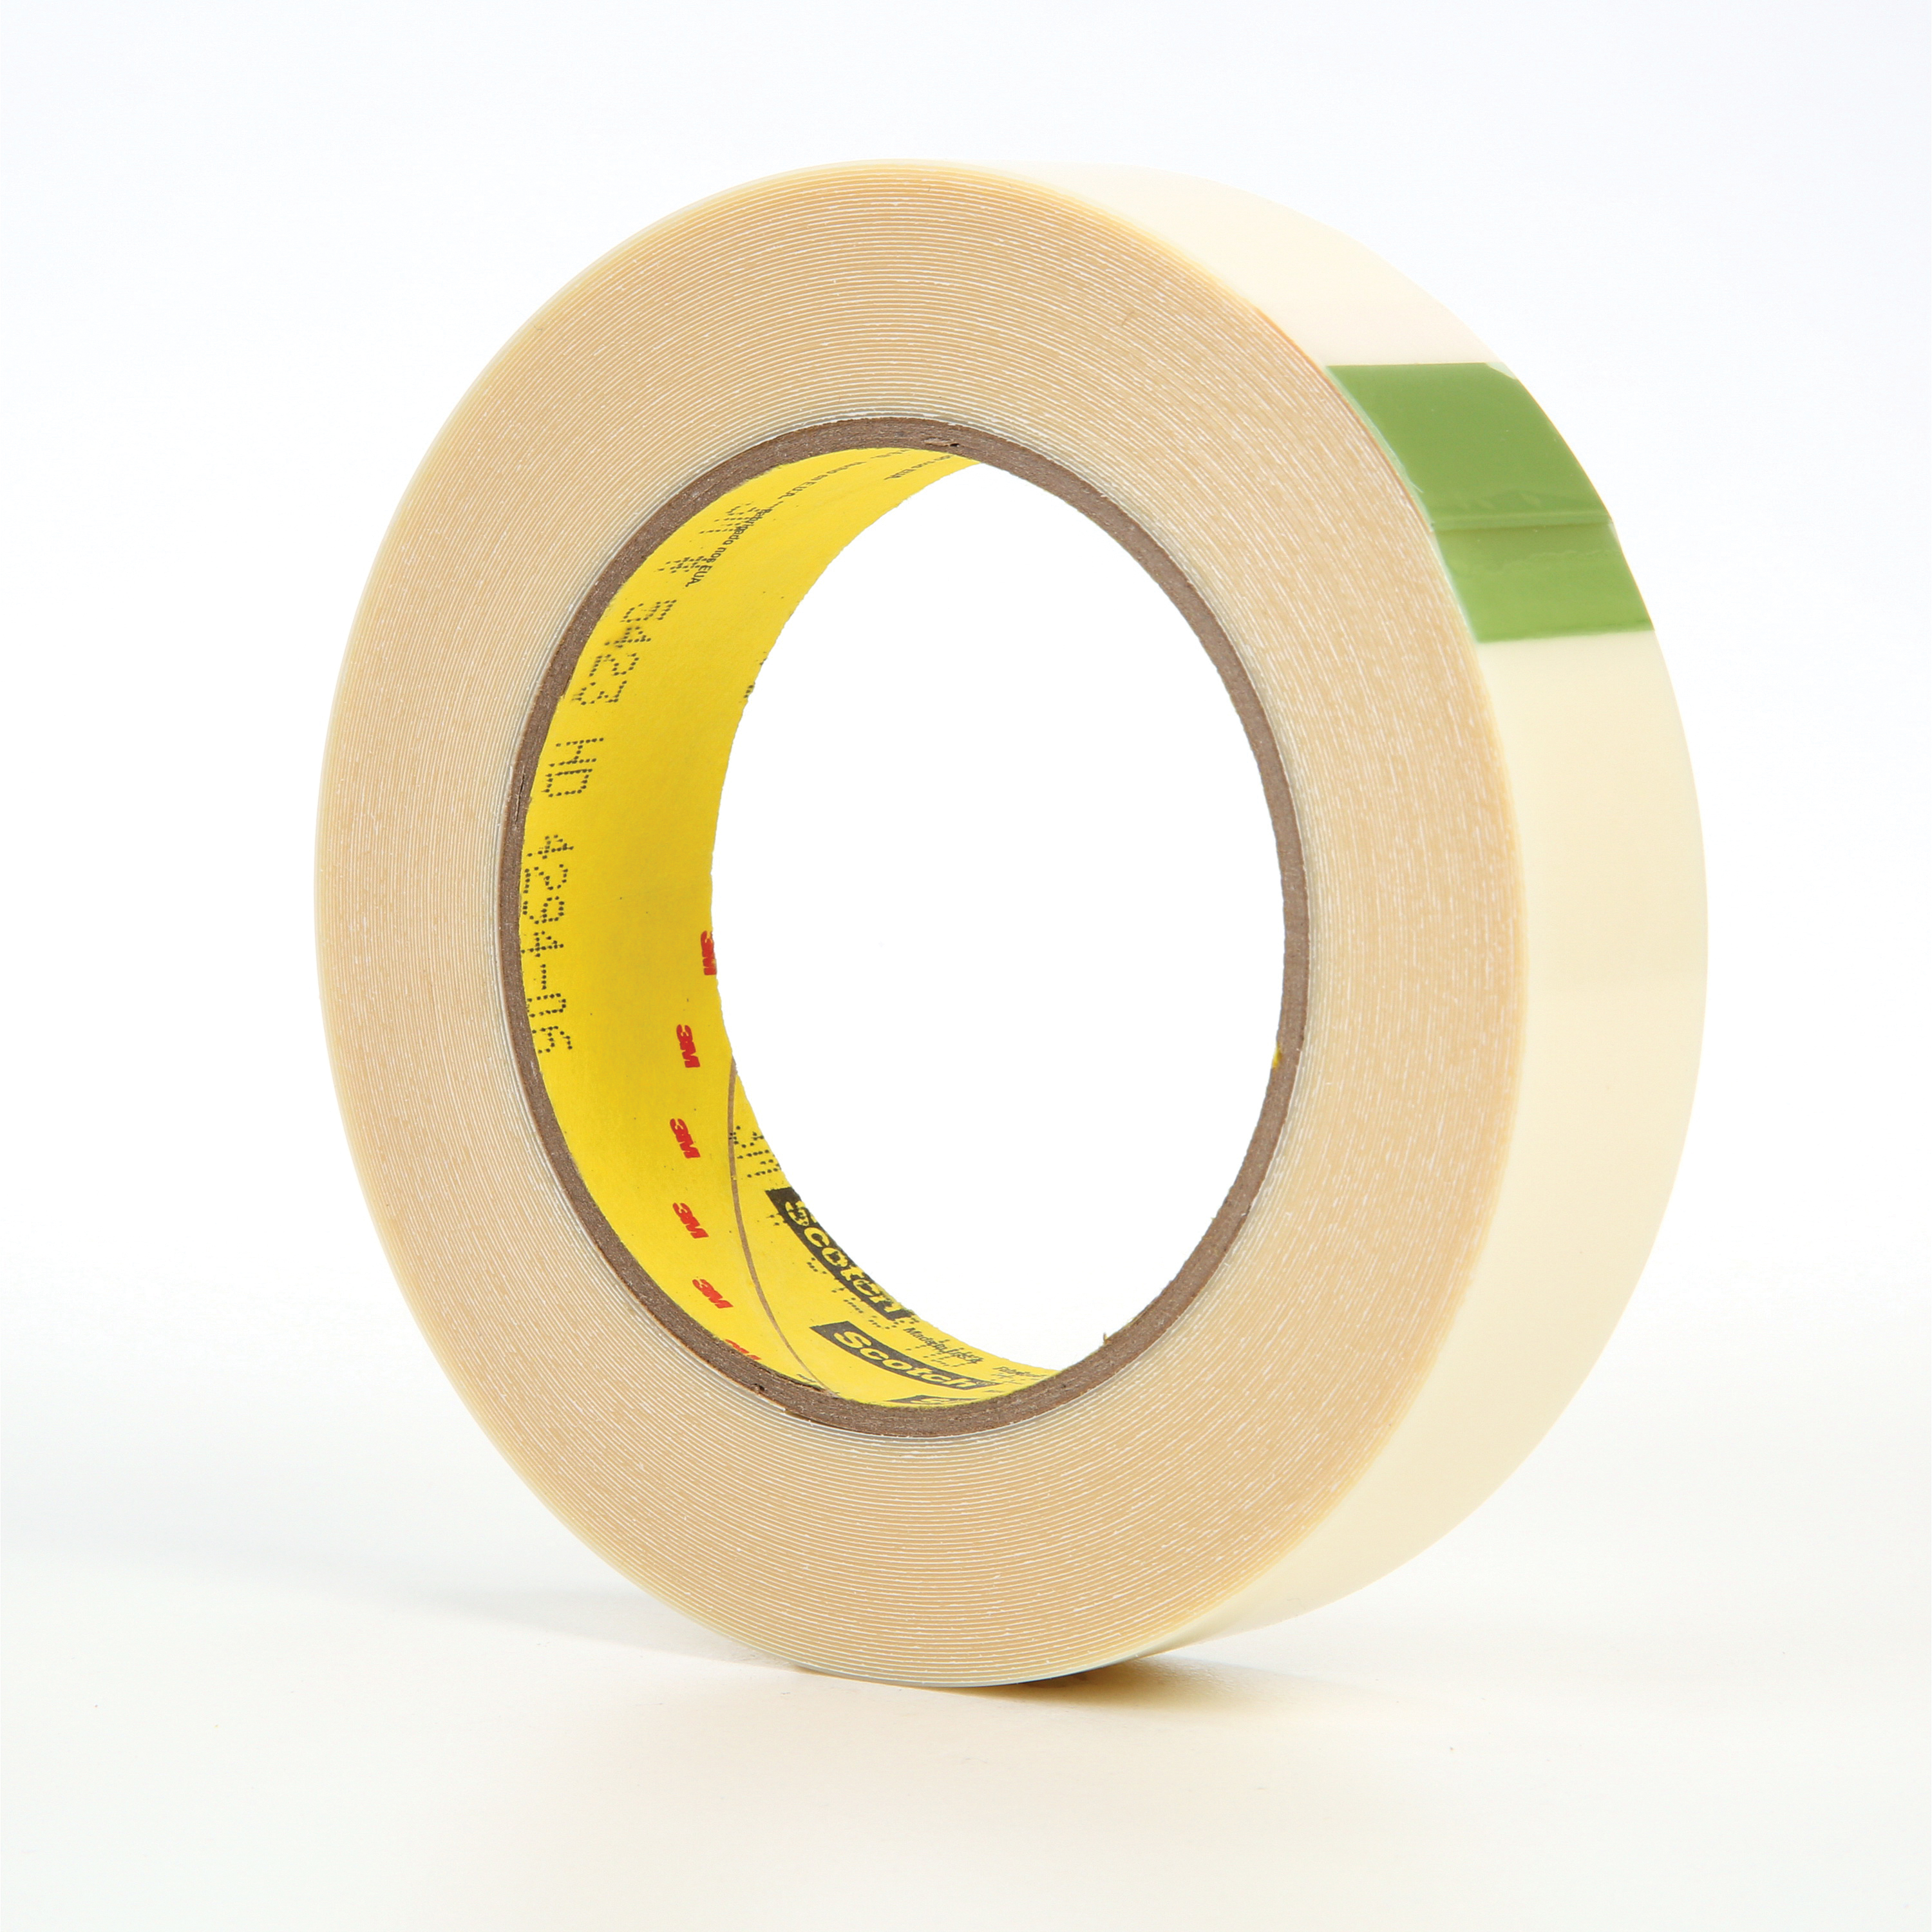 3M™ 021200-07577 5423 Film Tape, 18 yd L x 1 in W, 11.7 mil THK, Rubber Adhesive, 10 mil UHMW Polyethylene Backing, Transparent